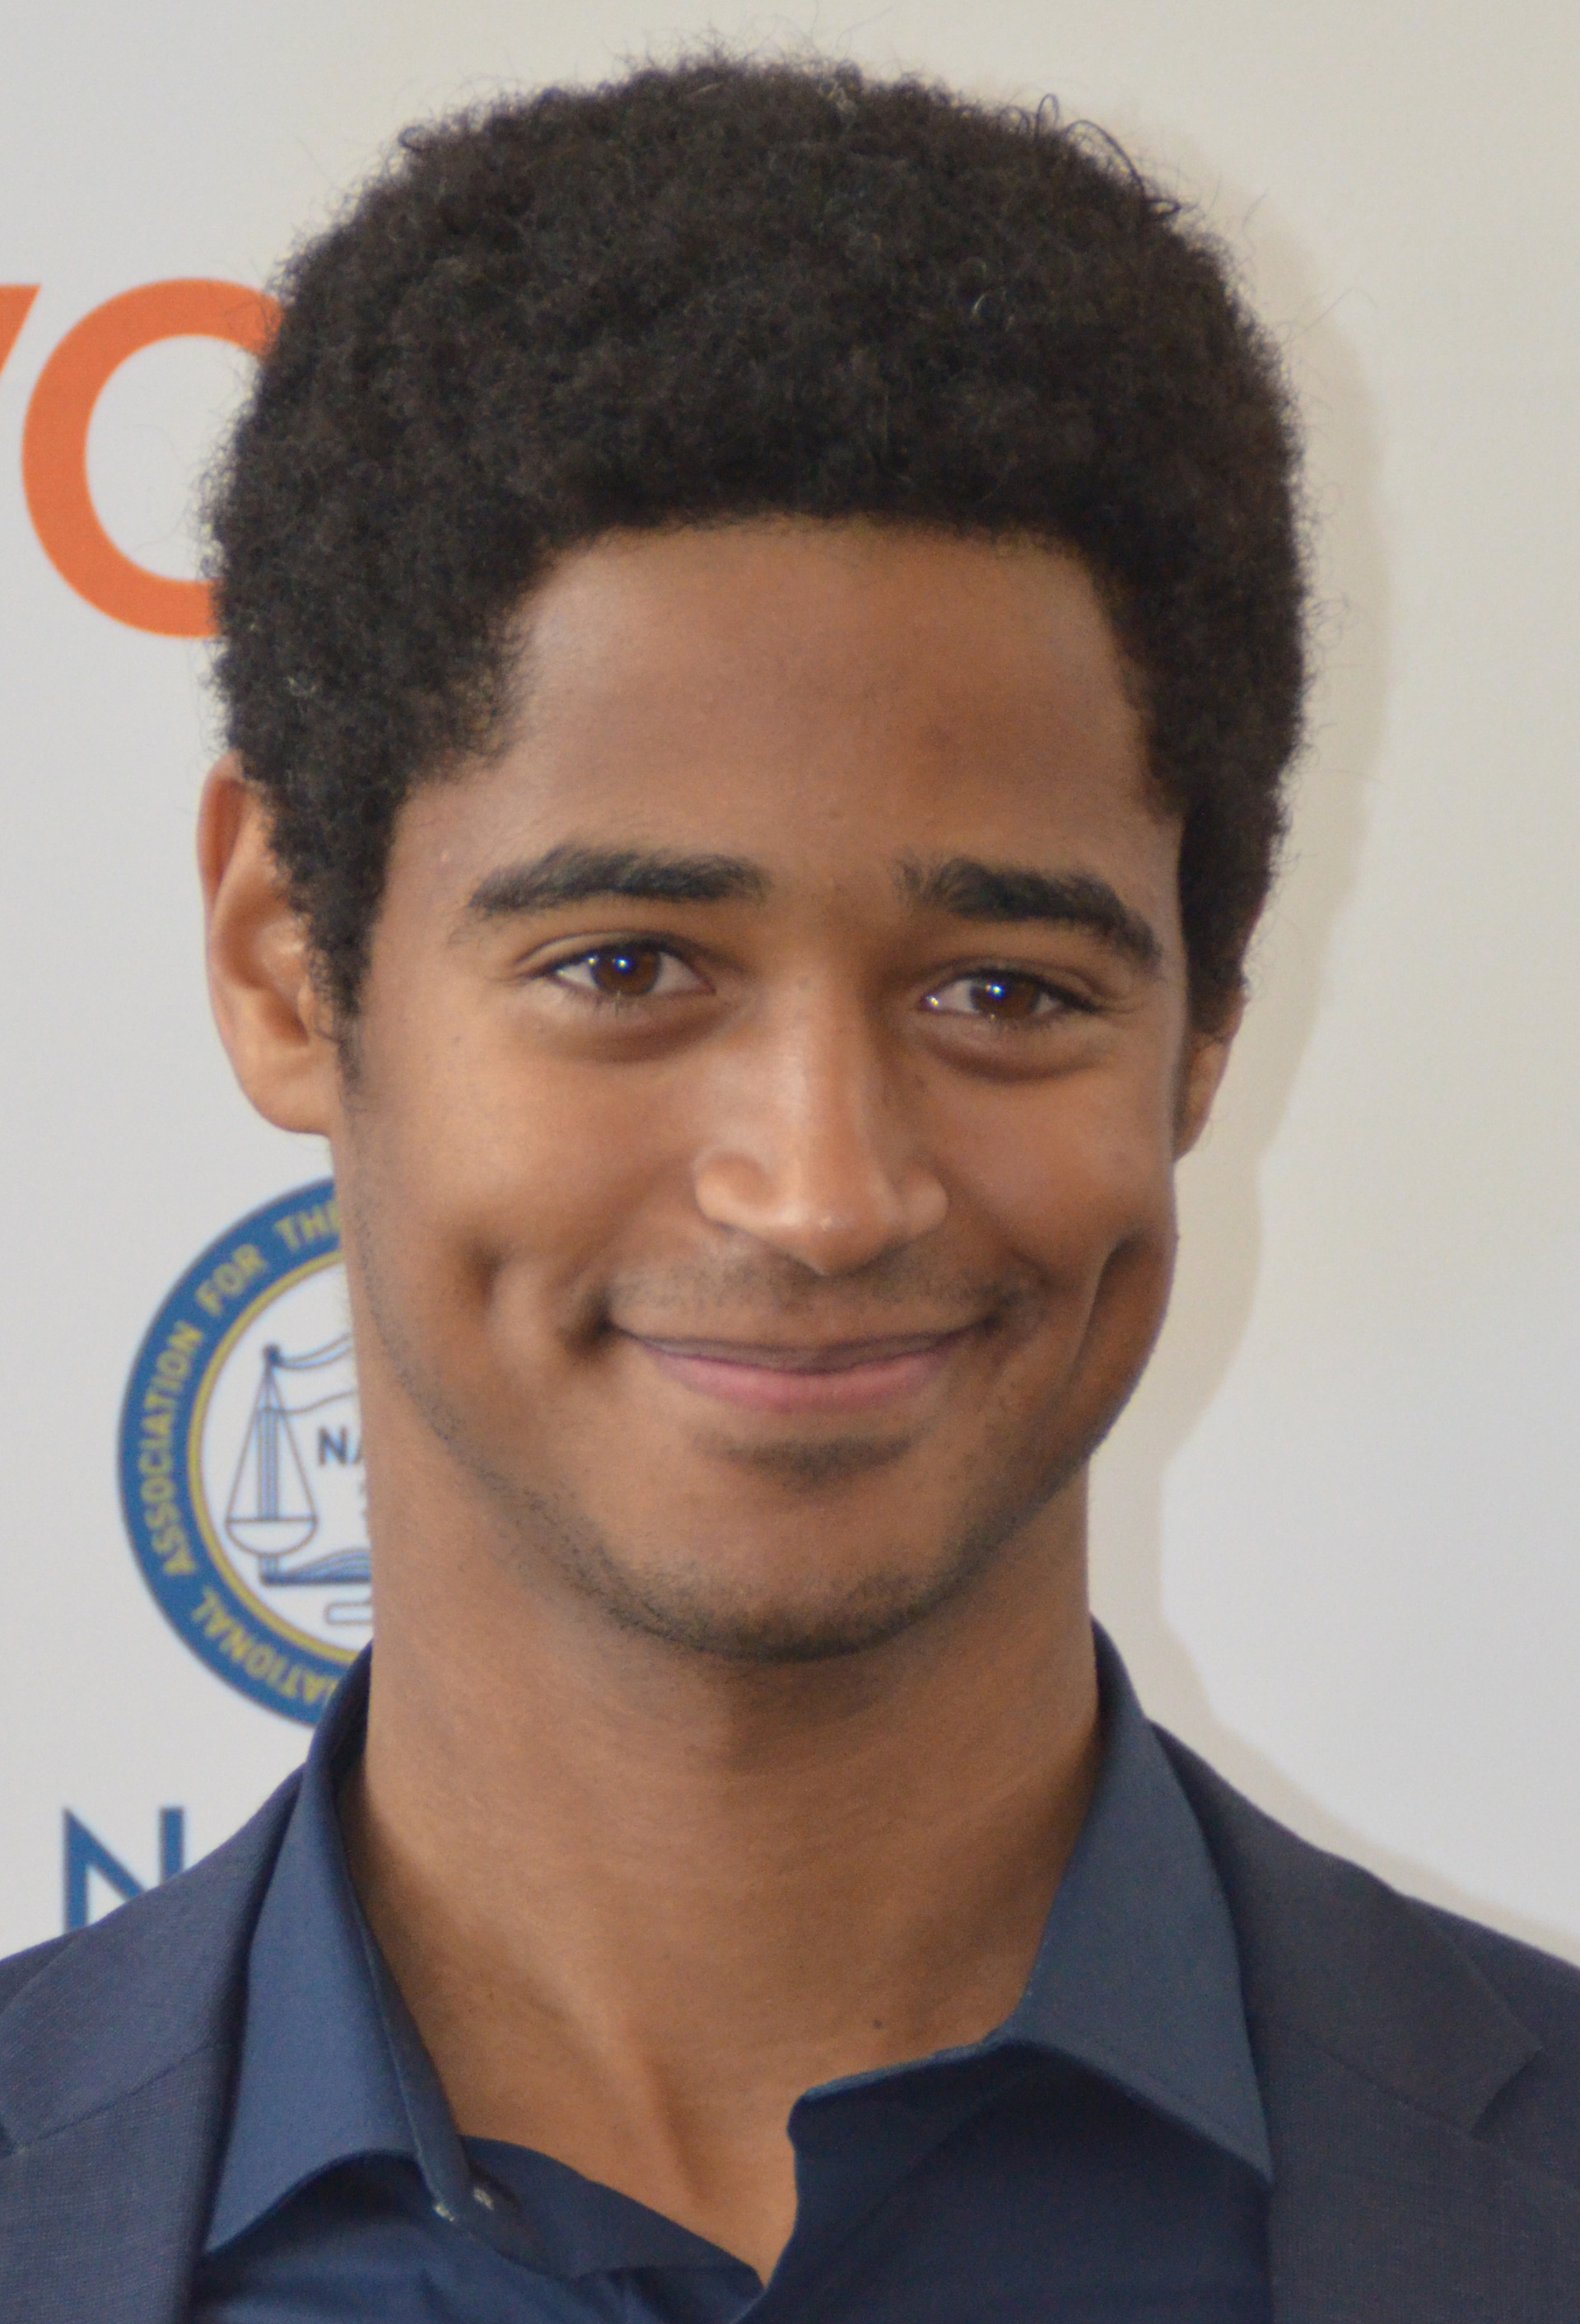 The 28-year old son of father William Russell and mother Balbina Gutierrez Russell, 184 cm tall Alfred Enoch in 2017 photo